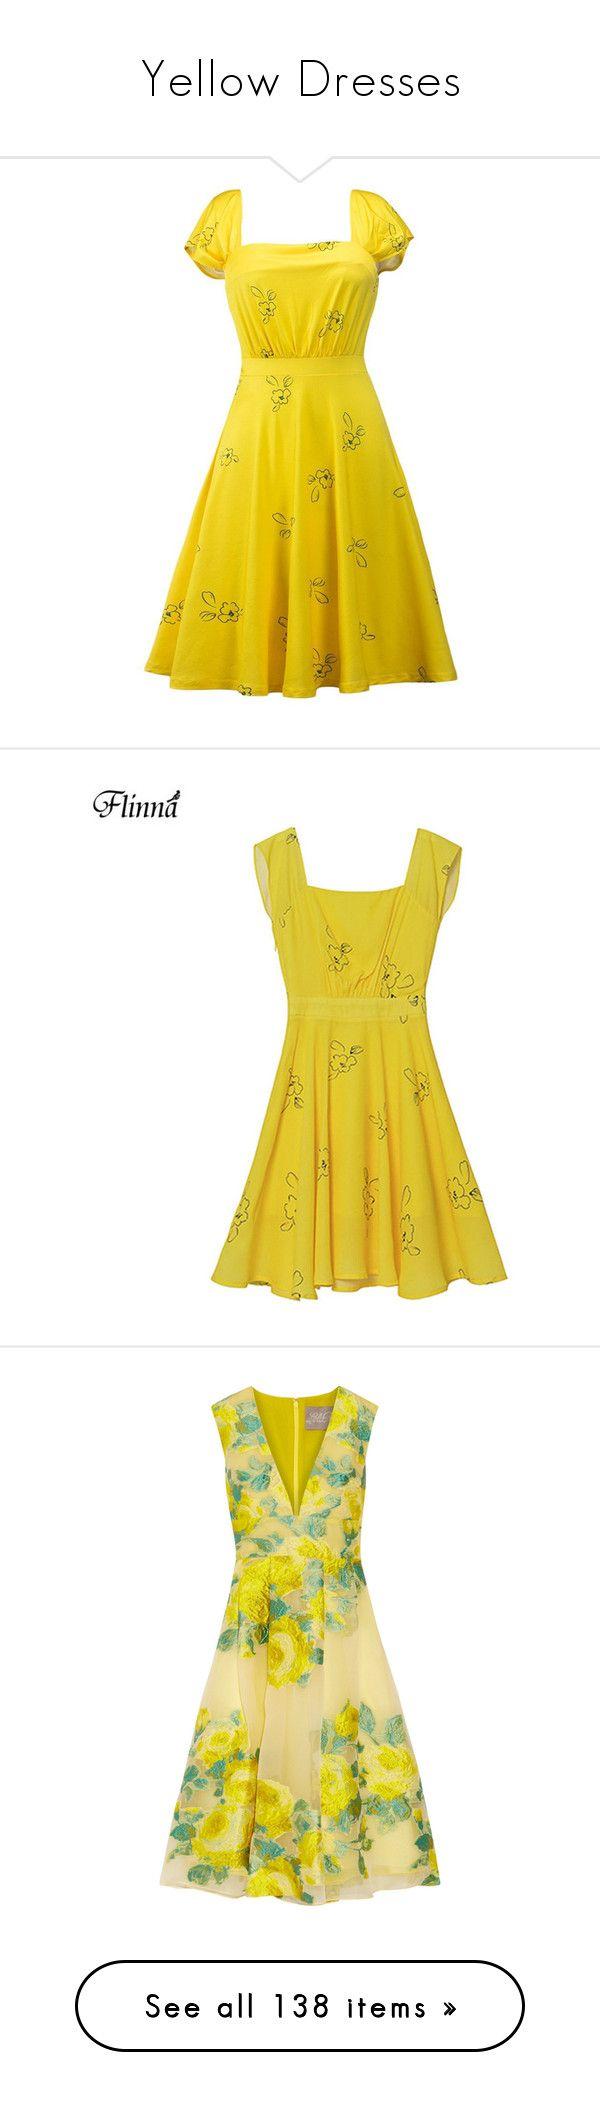 """""""Yellow Dresses"""" by lence-59 ❤ liked on Polyvore featuring dresses, holiday party dresses, yellow formal dresses, holiday cocktail dresses, formal evening dresses, cocktail dresses, bright yellow, multi color dress, multi-color dresses and floral pleated dress"""